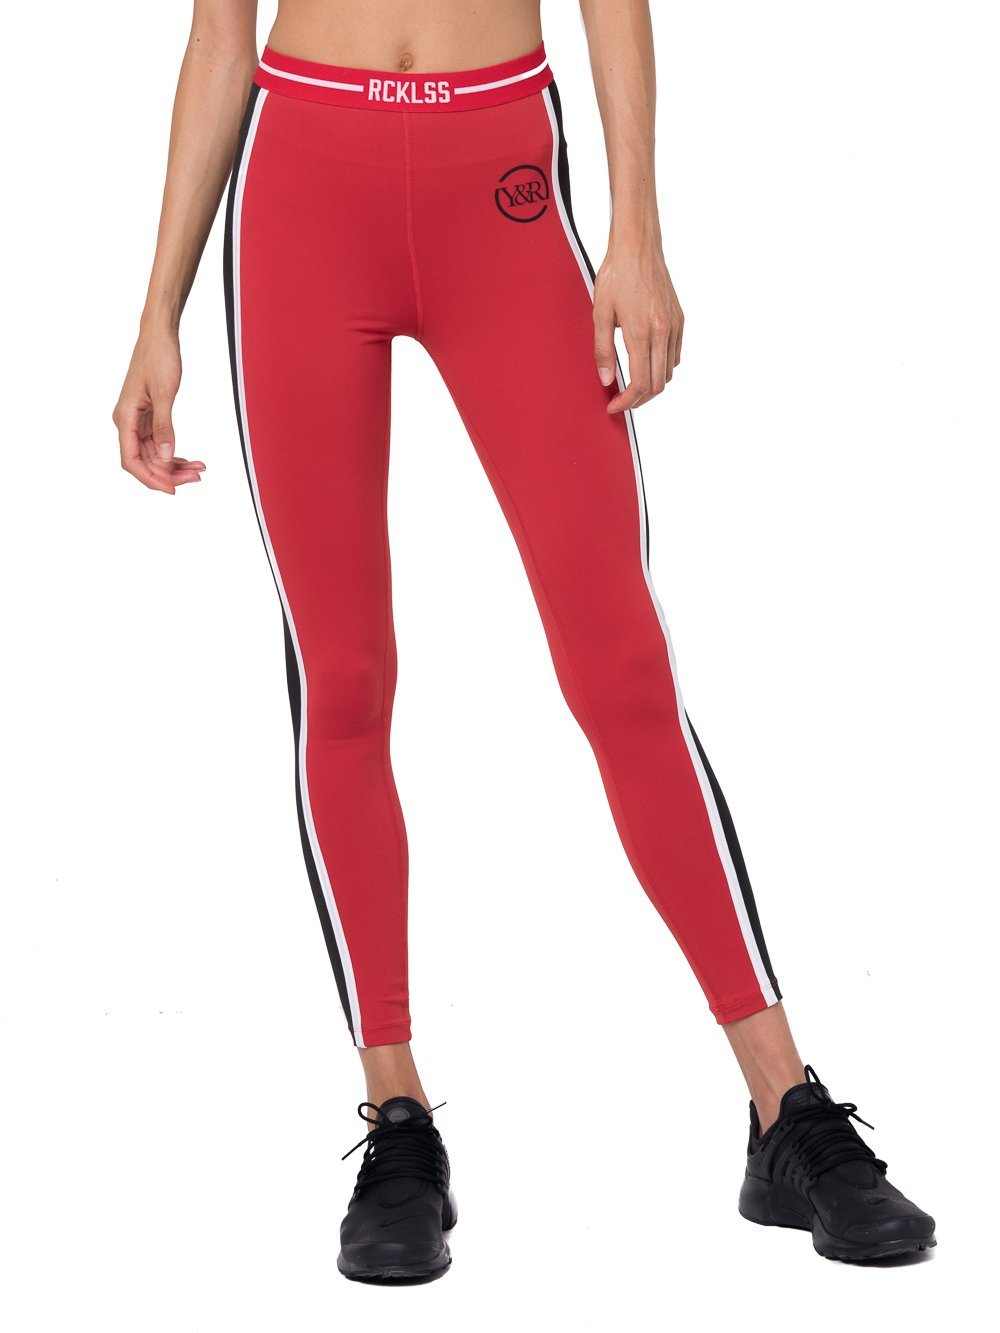 7ee088e75 Reckless Girls Womens - Activewear - Leggings Maya Leggings- Red/Black